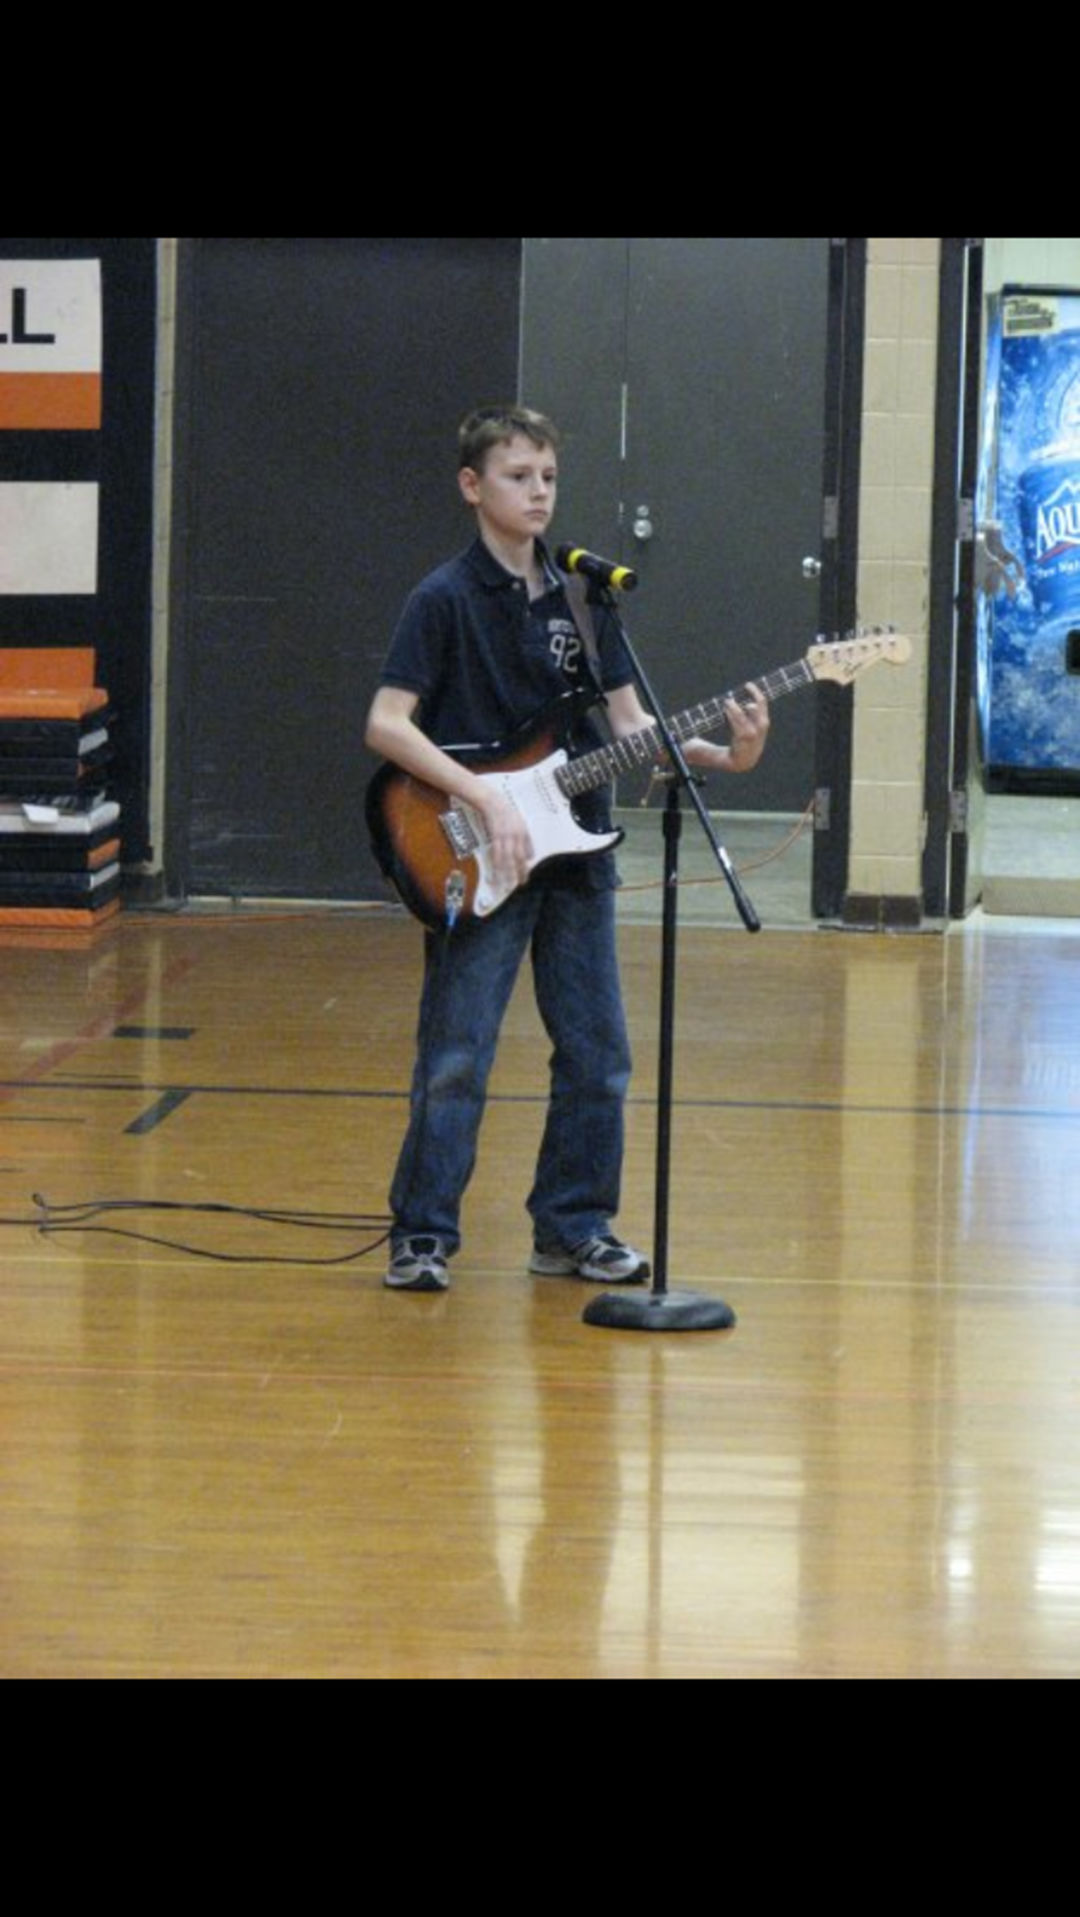 Randy playing guitar in middle school